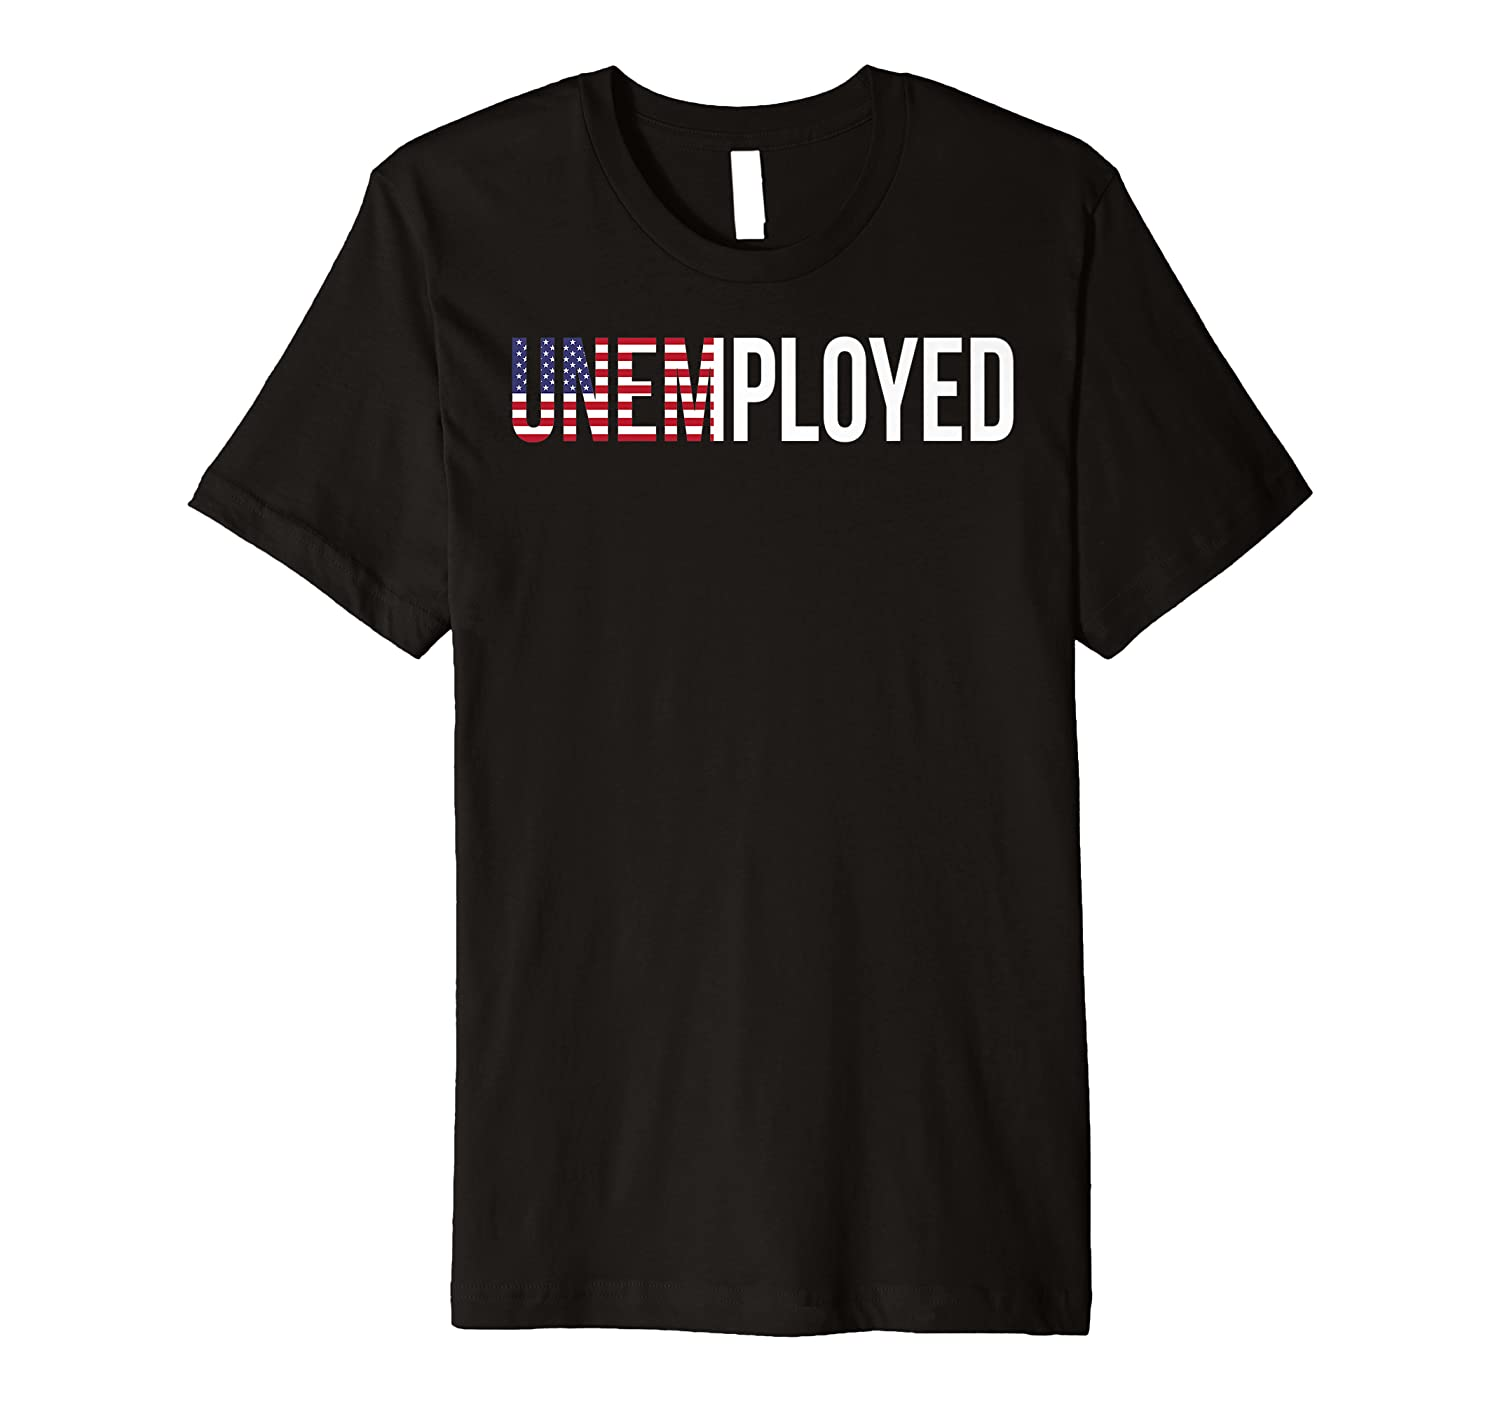 Unemployed Funny Looking For Job Career Seeker Gift Shirts